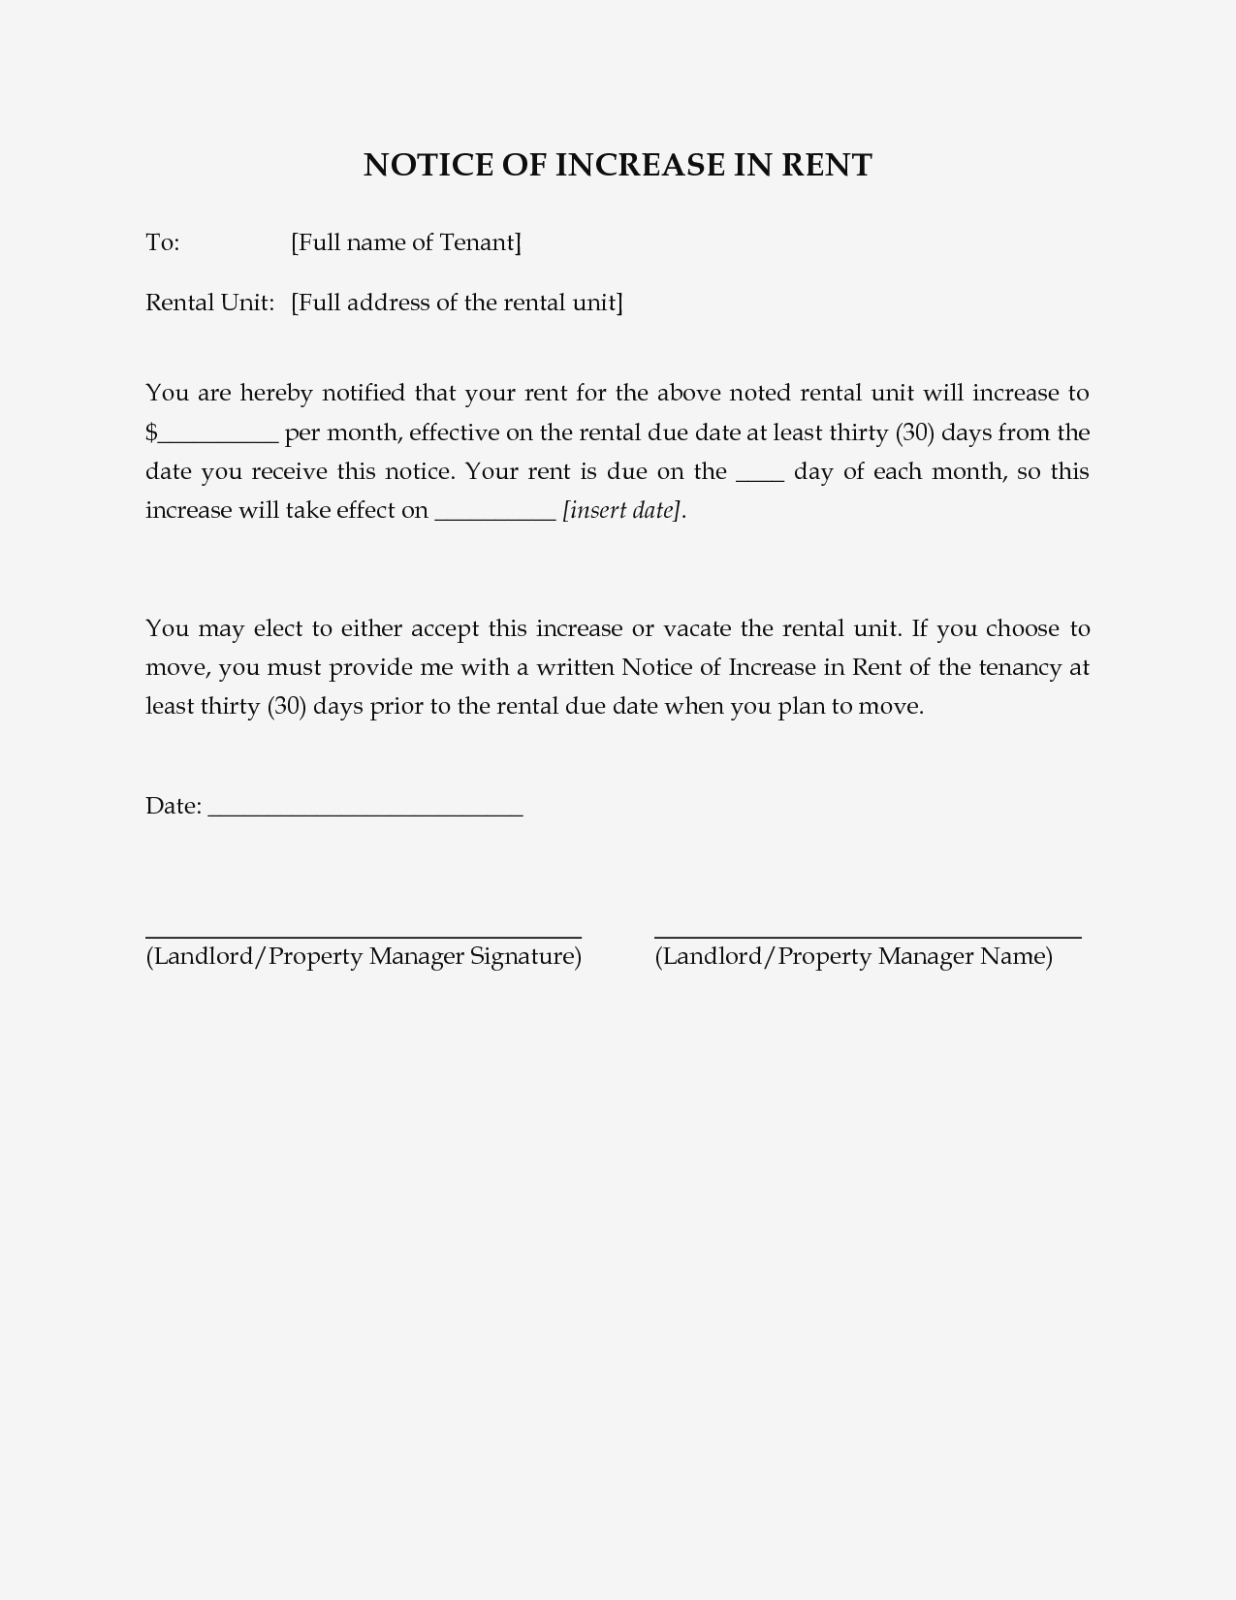 Free Printable Rent Increase Letter | Sample Documents – Free - Free Printable Rent Increase Letter